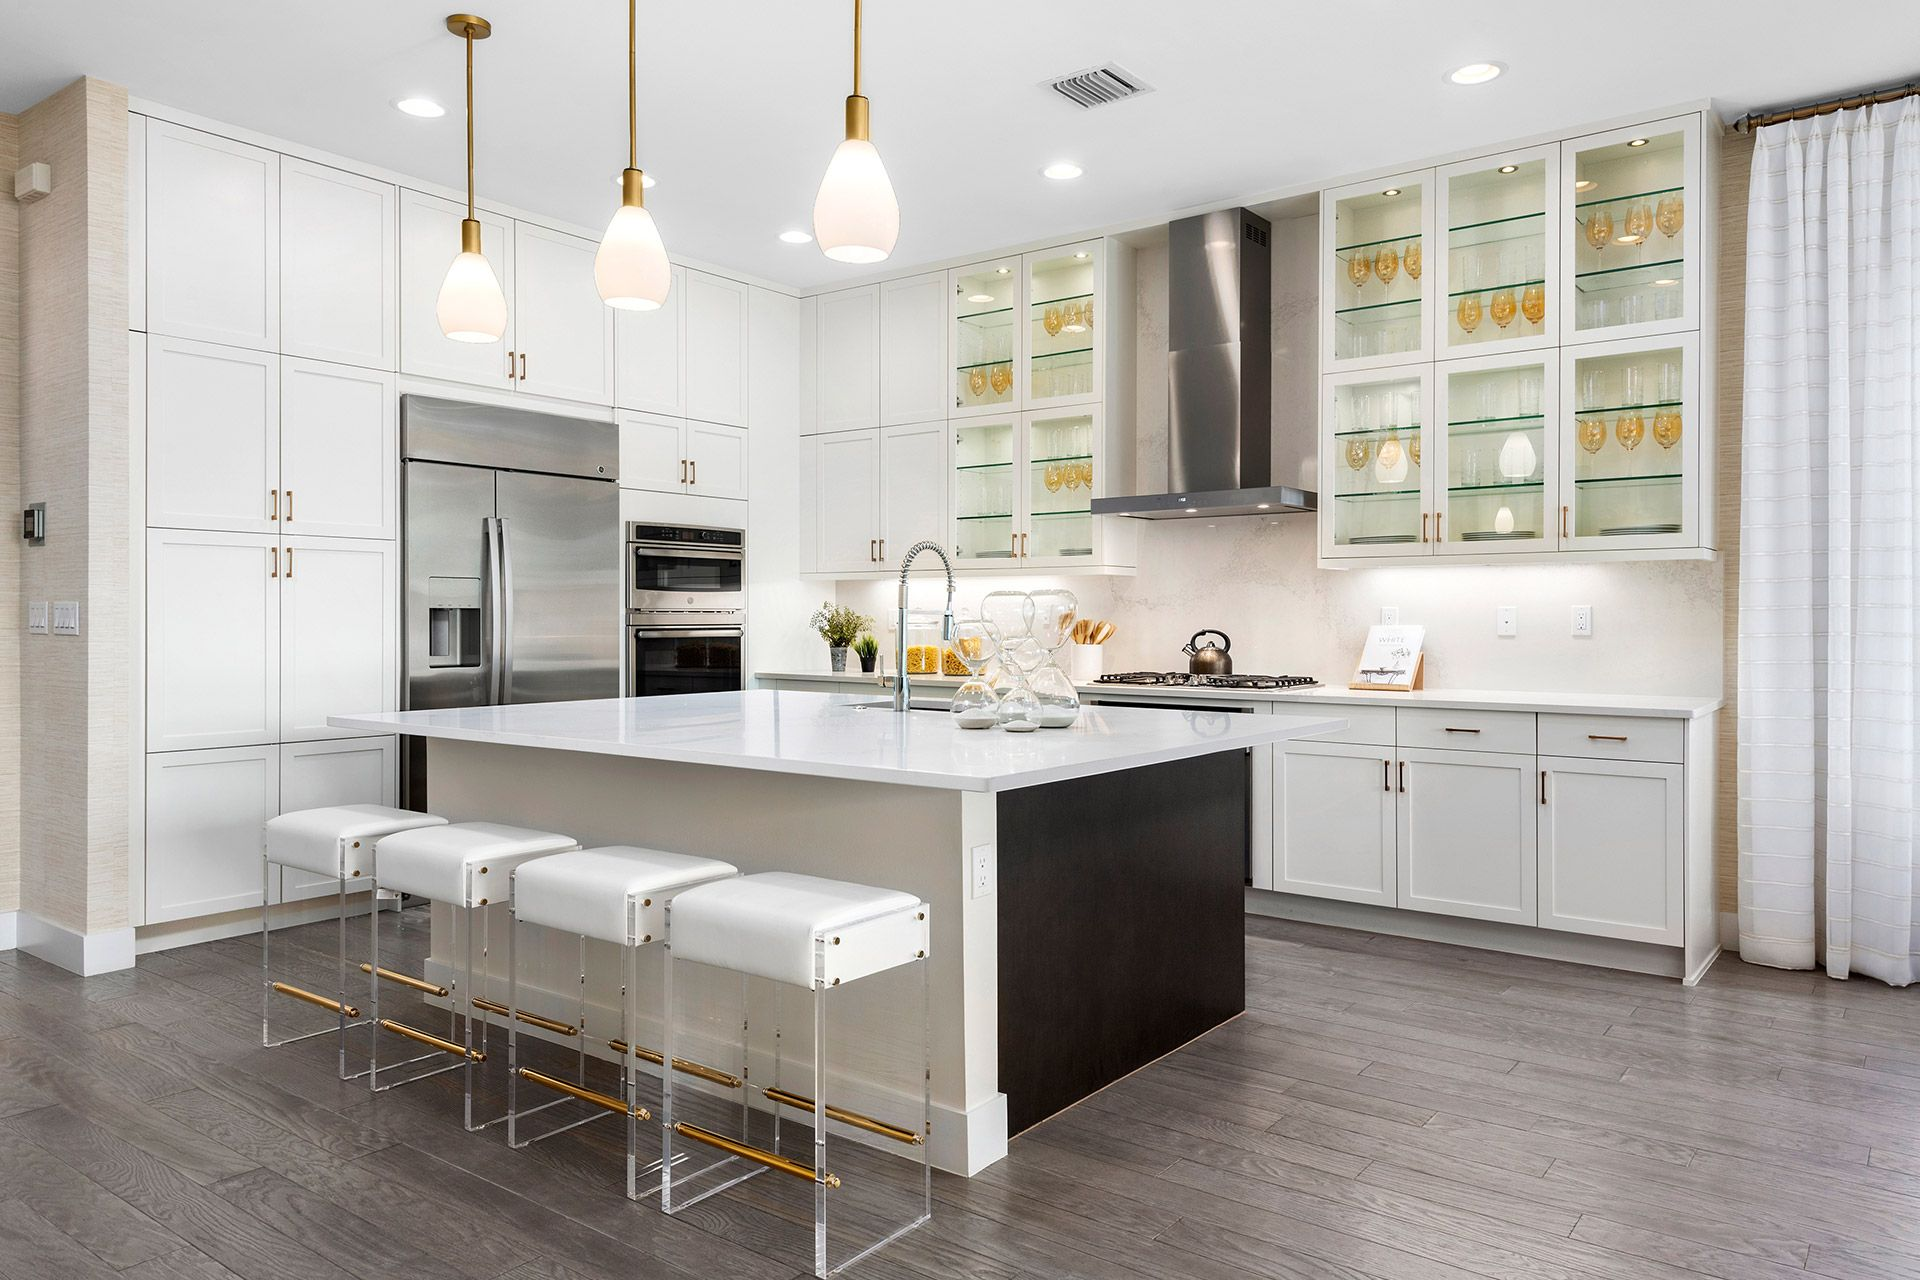 Kitchen featured in the Samoa By GL Homes in Palm Beach County, FL